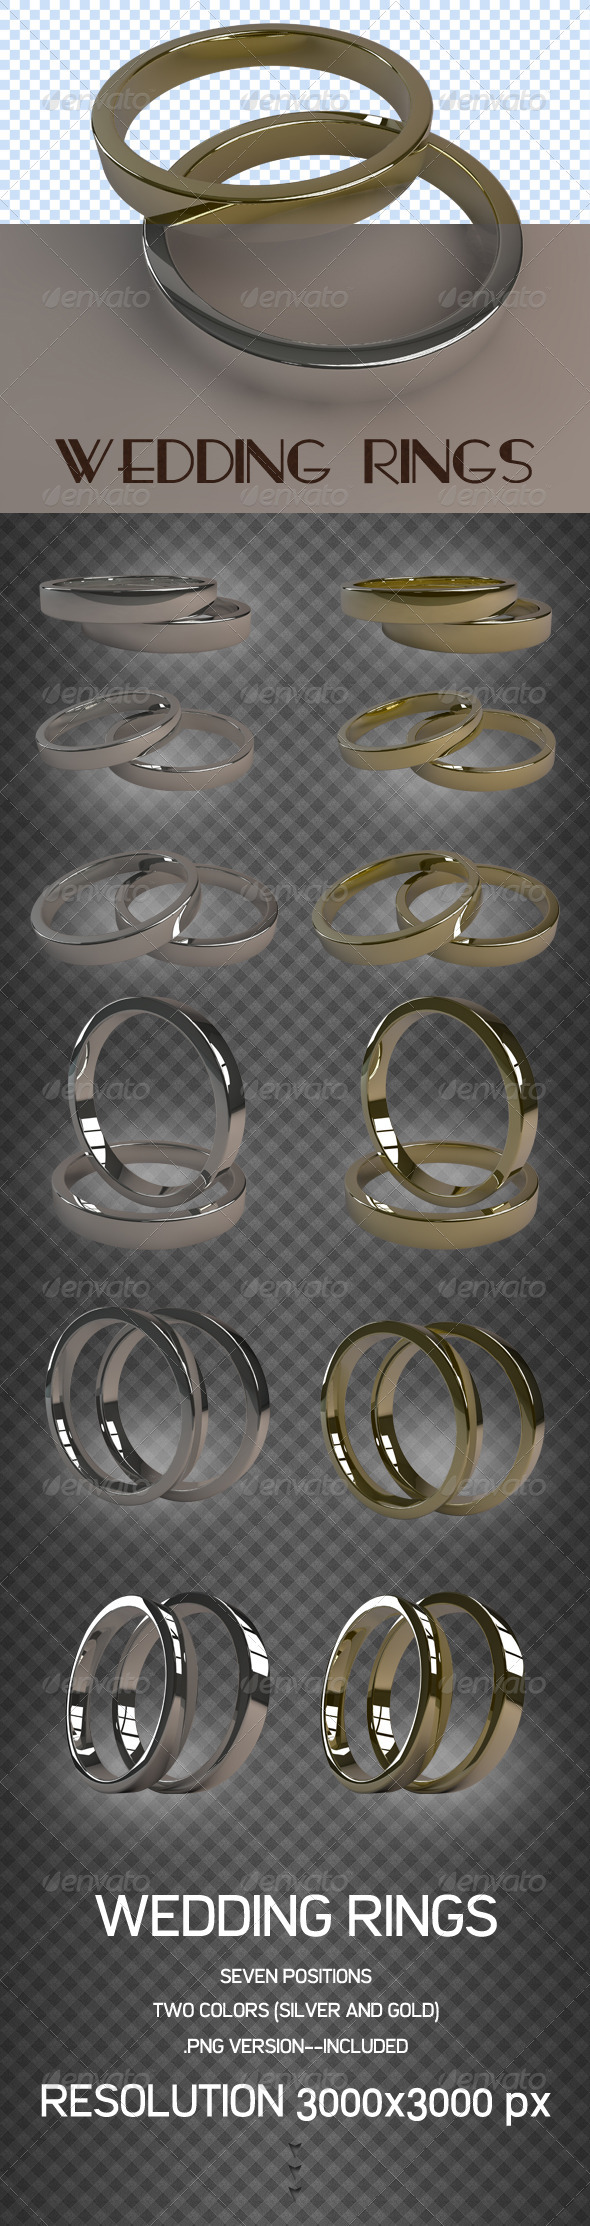 3D Wedding Rings - 3D Renders Graphics